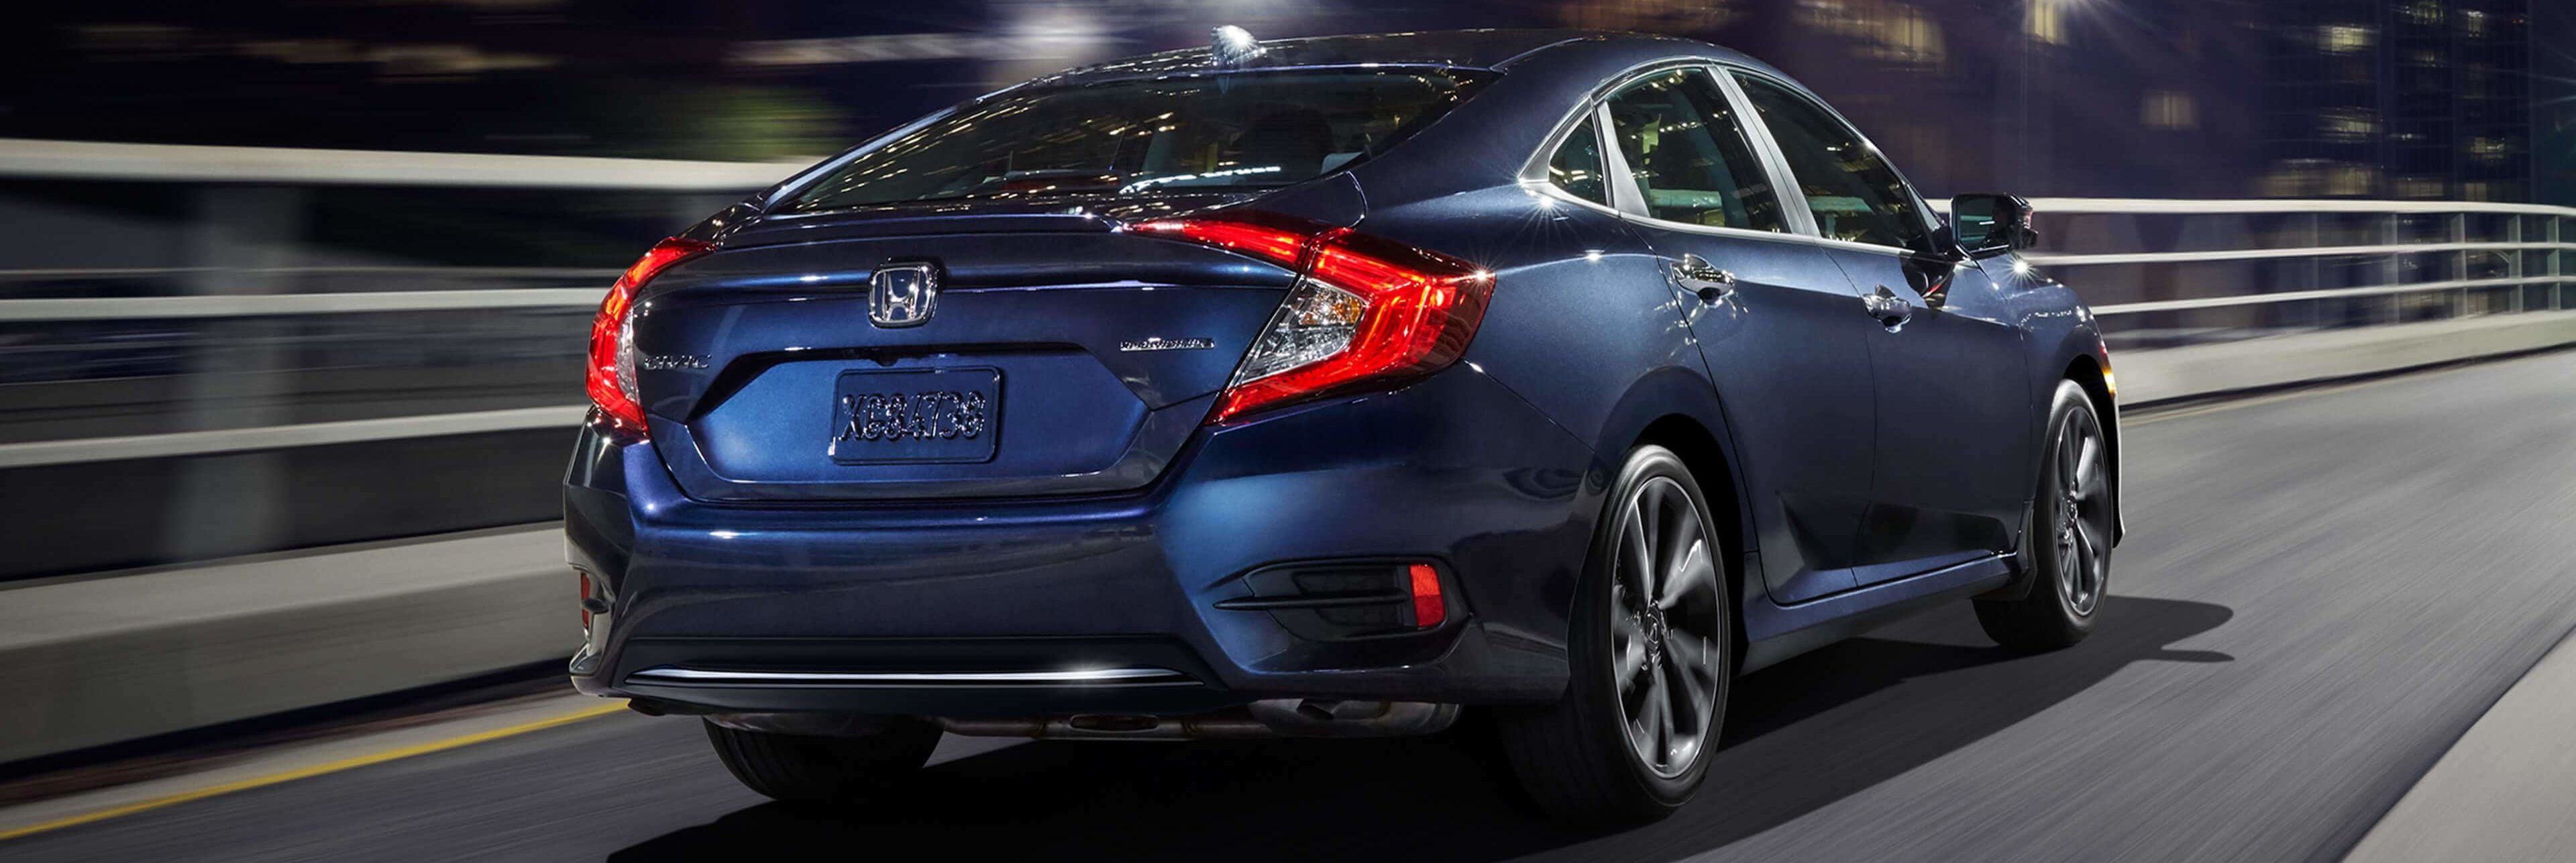 Rear of a 2019 Civic driving at night in a city